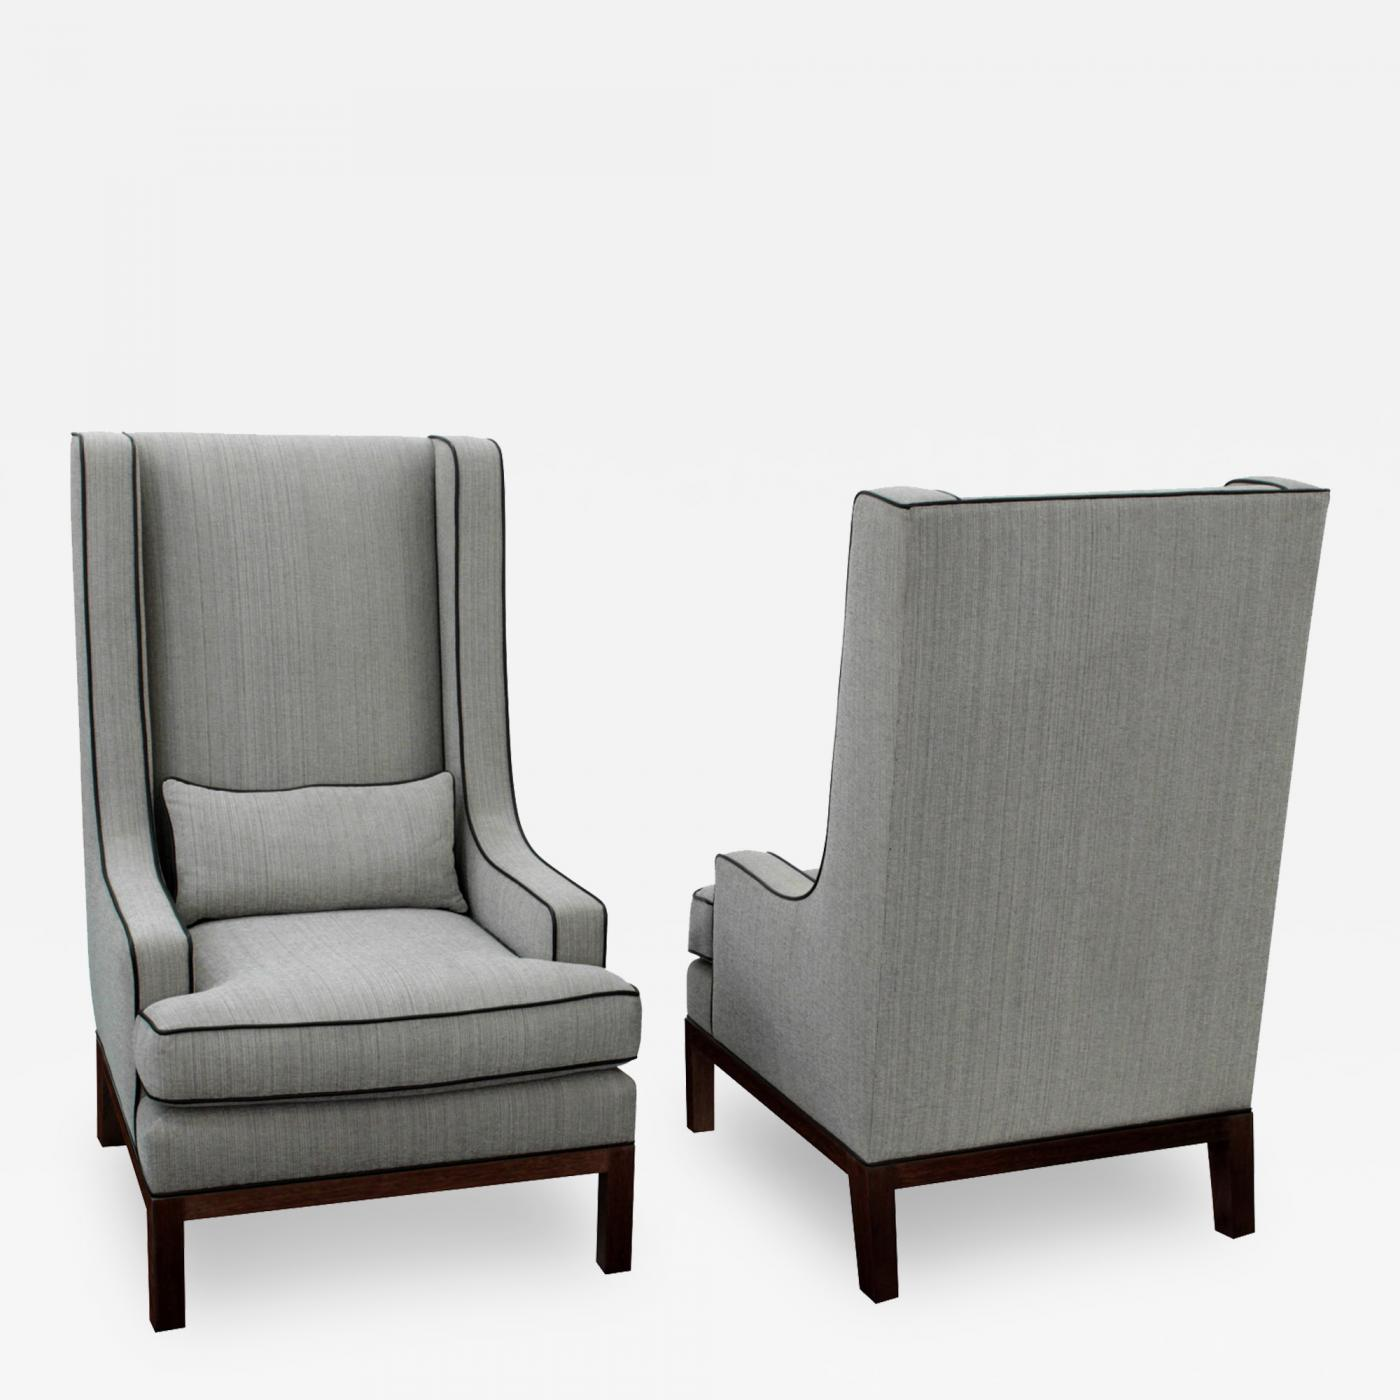 Beau Listings / Furniture / Seating / Lounge Chairs · Thad Hayes Pair Of Custom High  Back Club ...